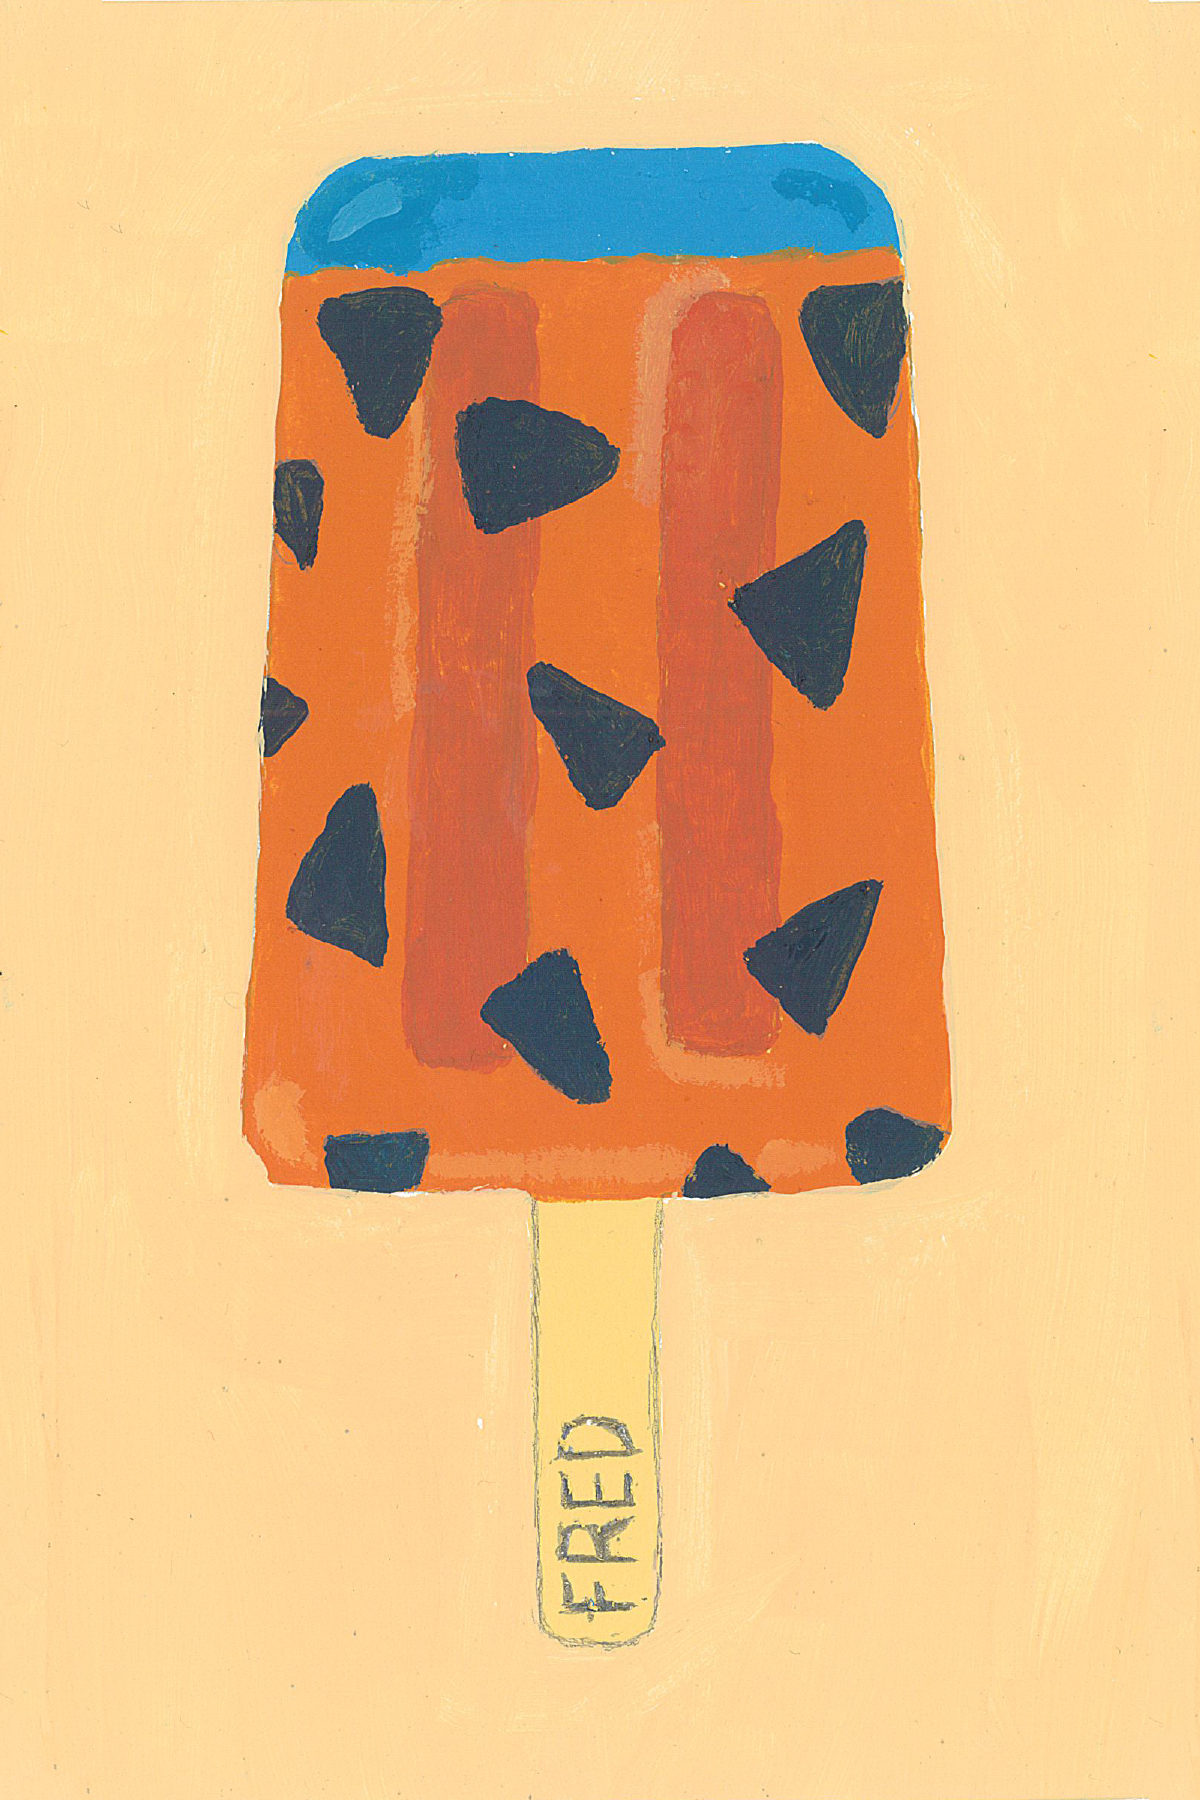 Chris_Cureton_PopsicleSeries_Fred_4x6_Acrylic.jpg